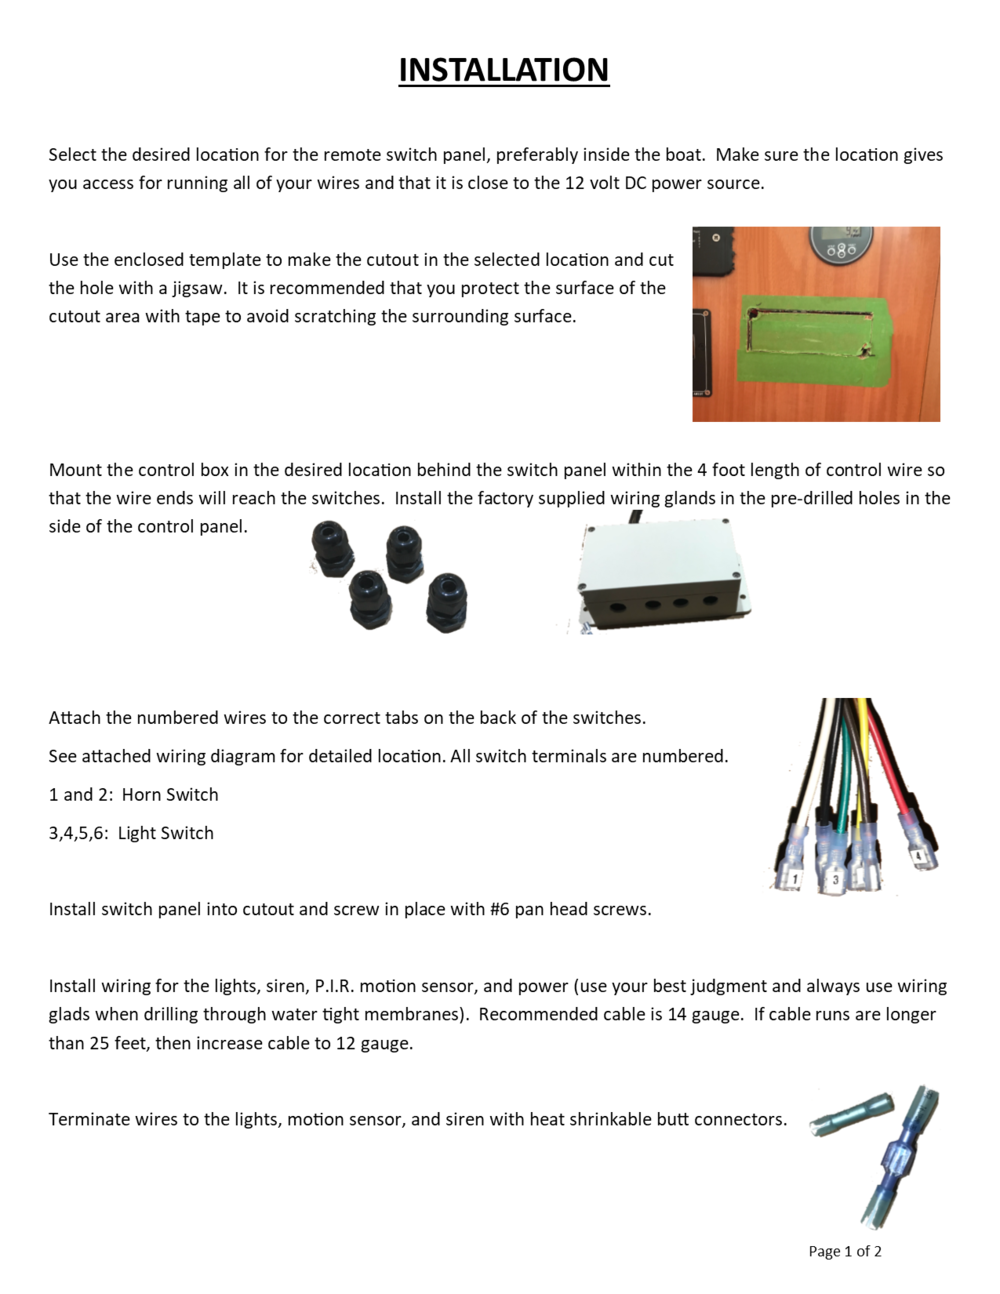 Installation Instructions For Pirate Lights 14 Gauge Wiring Diagram Page One